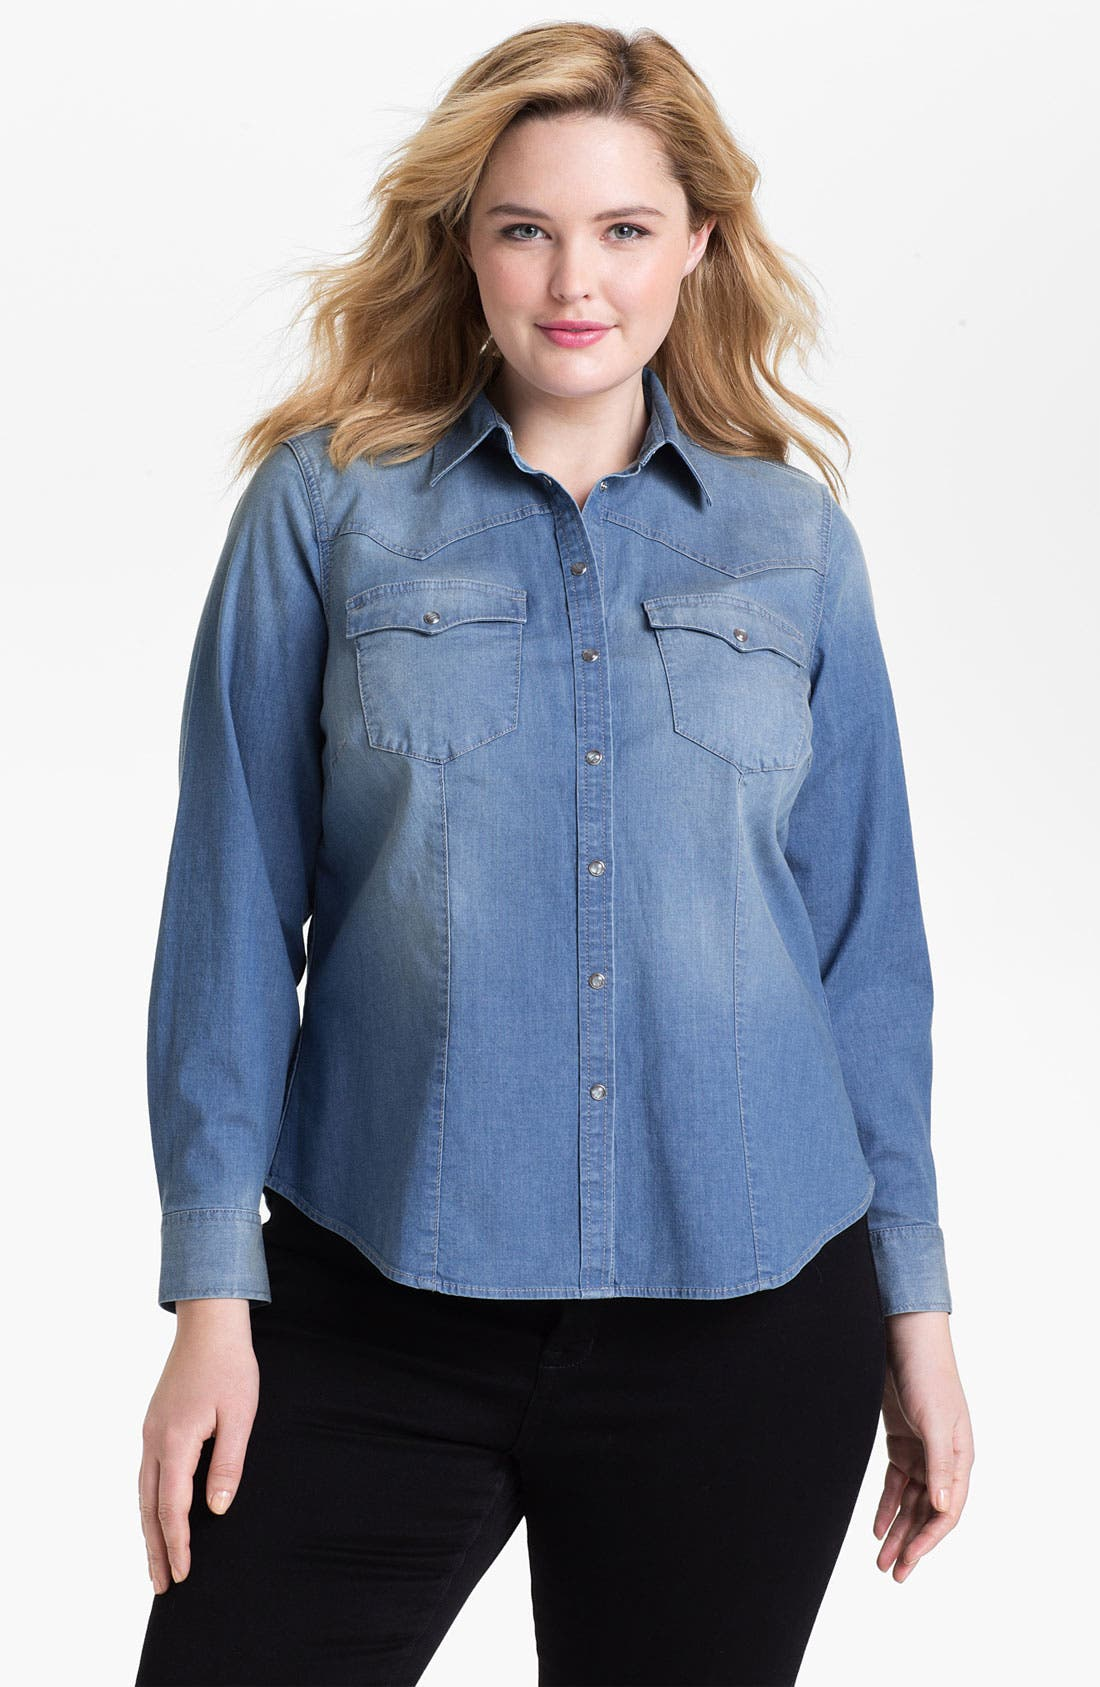 Main Image - Two by Vince Camuto Western Denim Shirt (Plus Size)